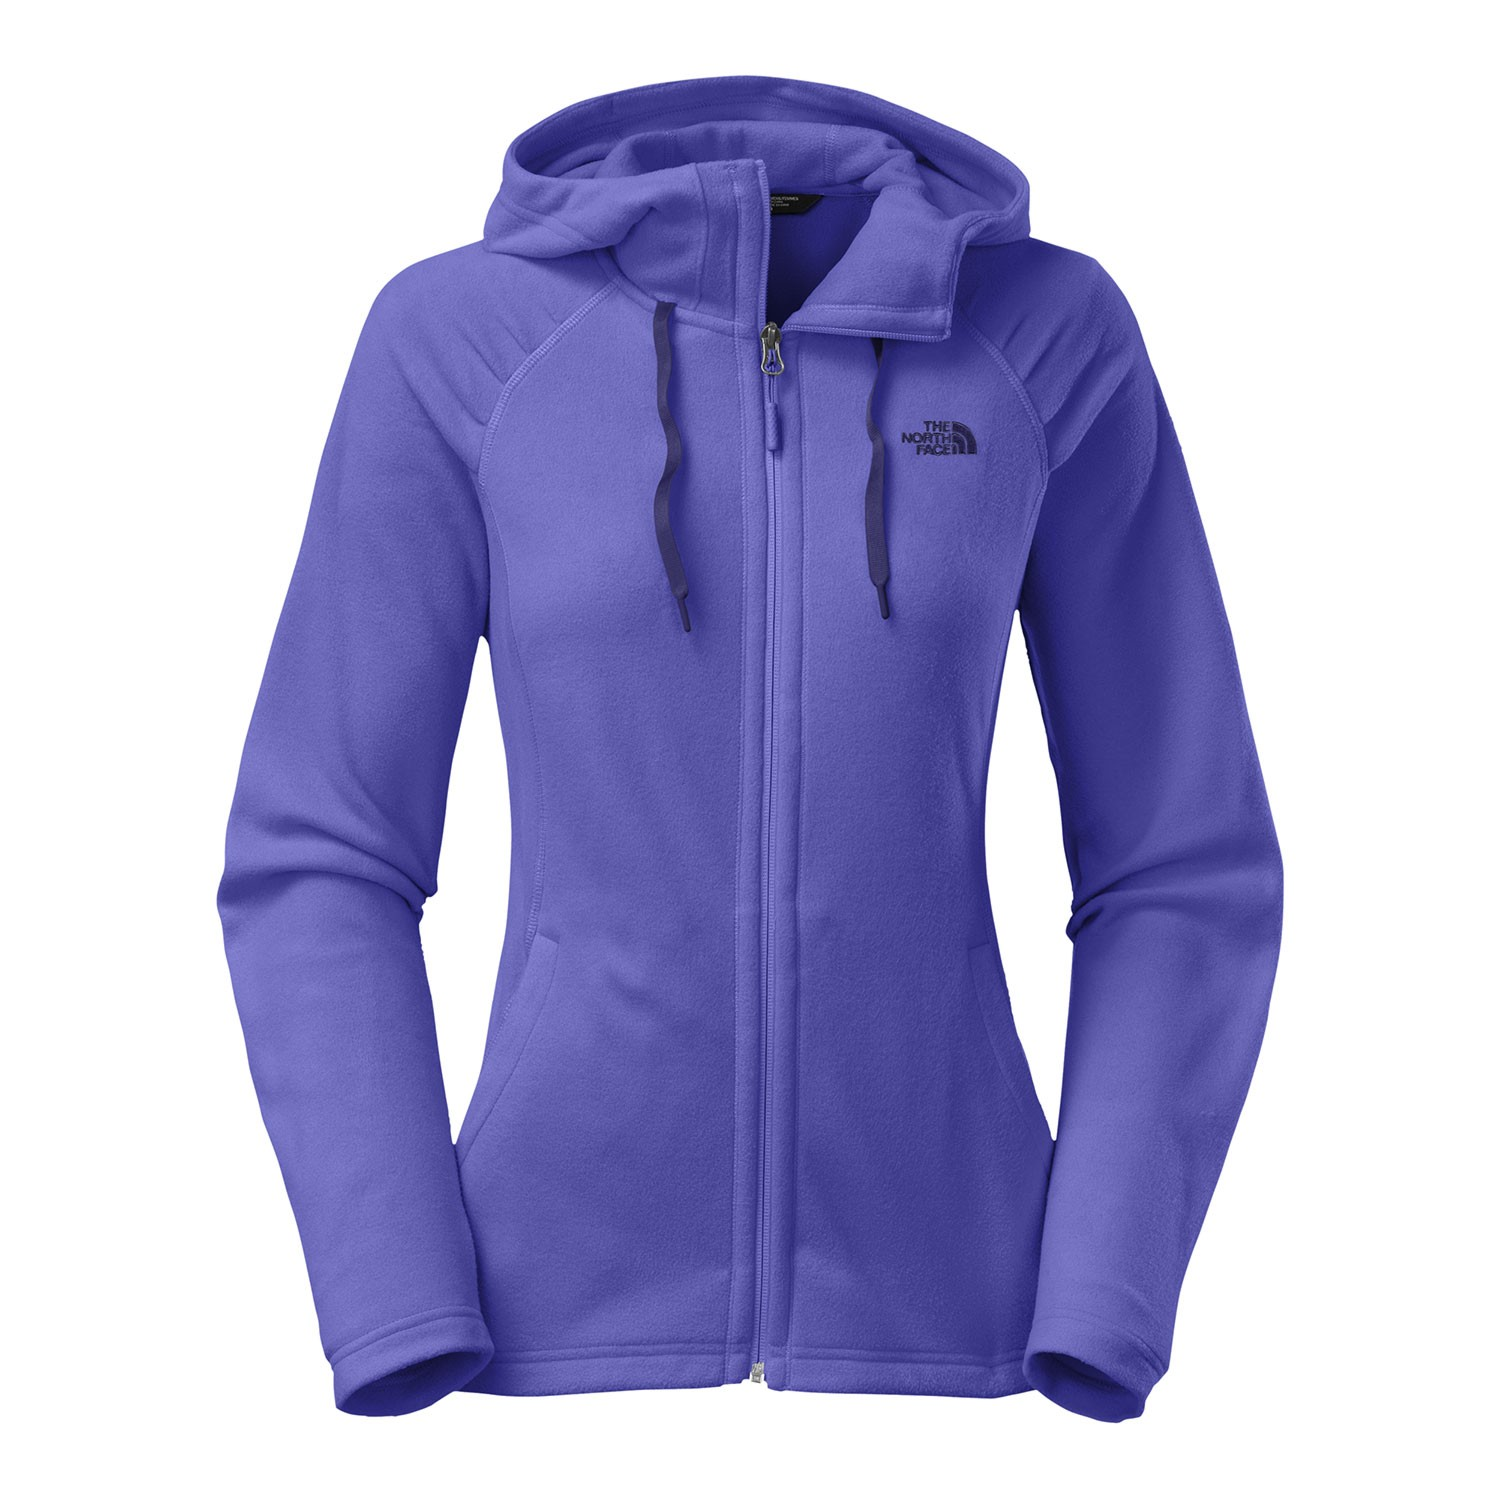 Light North Face Fleece Jacket (Women) Image